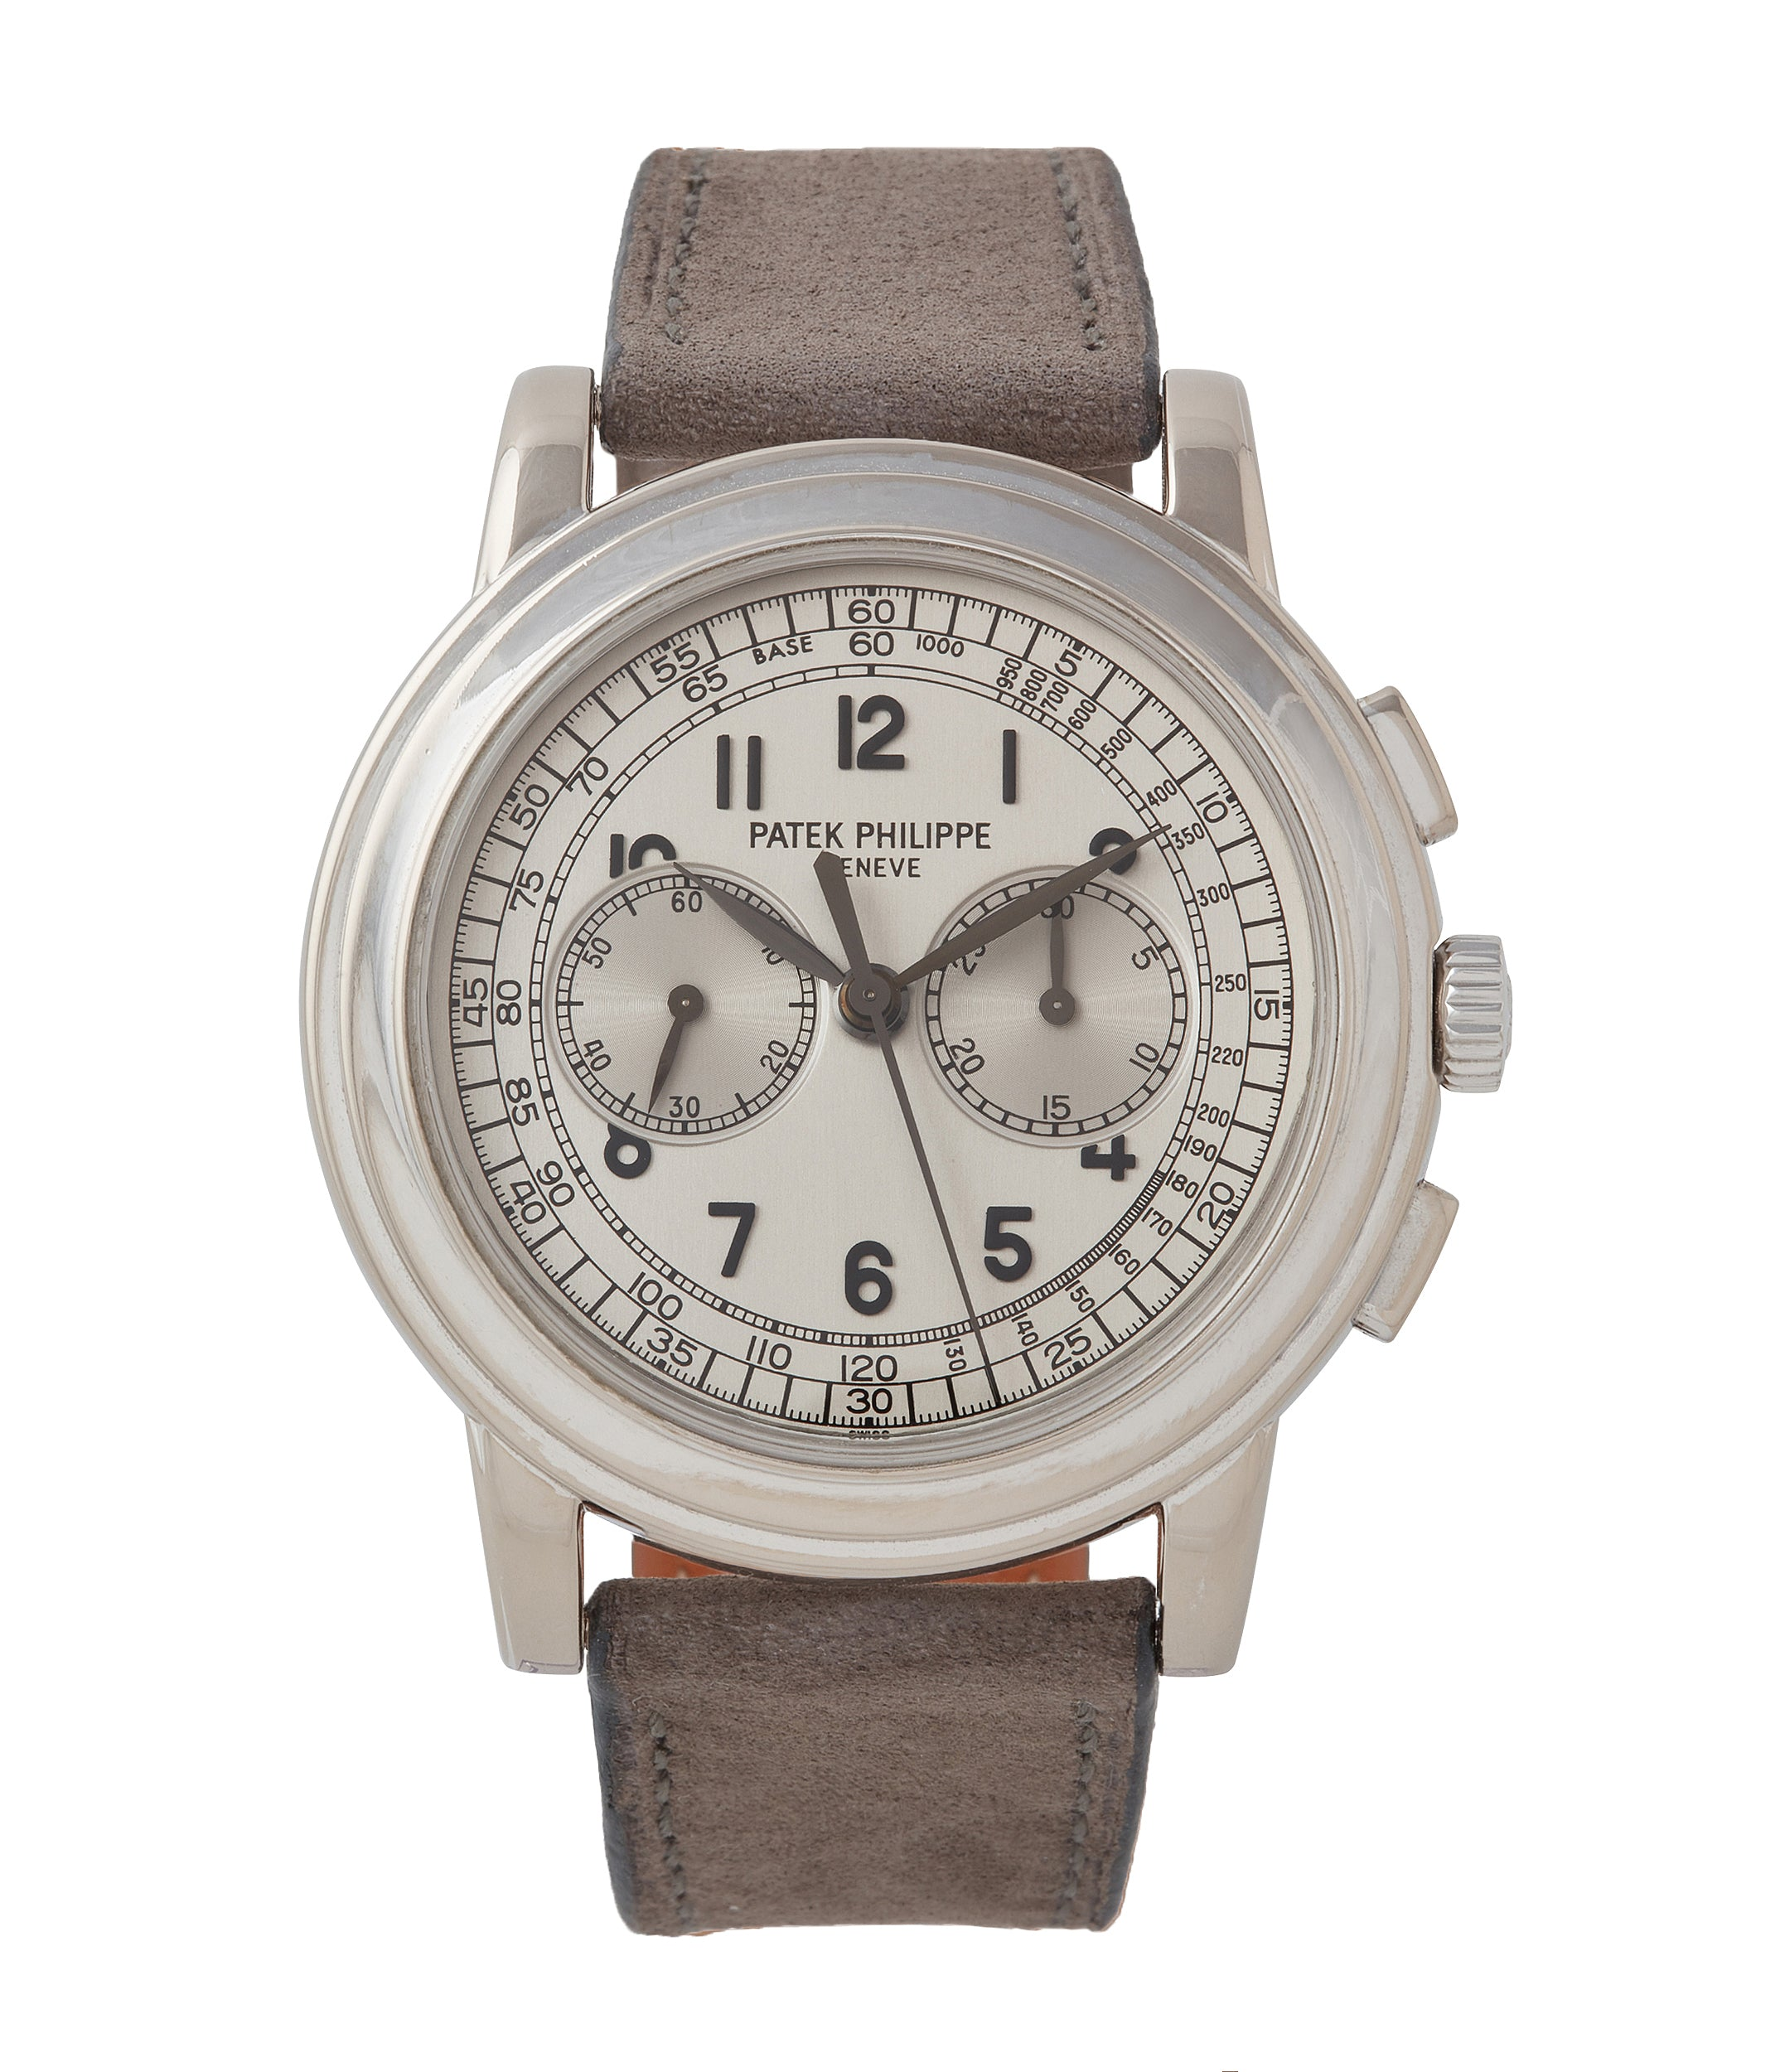 buy Patek Philippe 5070 Chronograph white gold dress watch for sale online at A Collected Man London UK specialist of rare watches